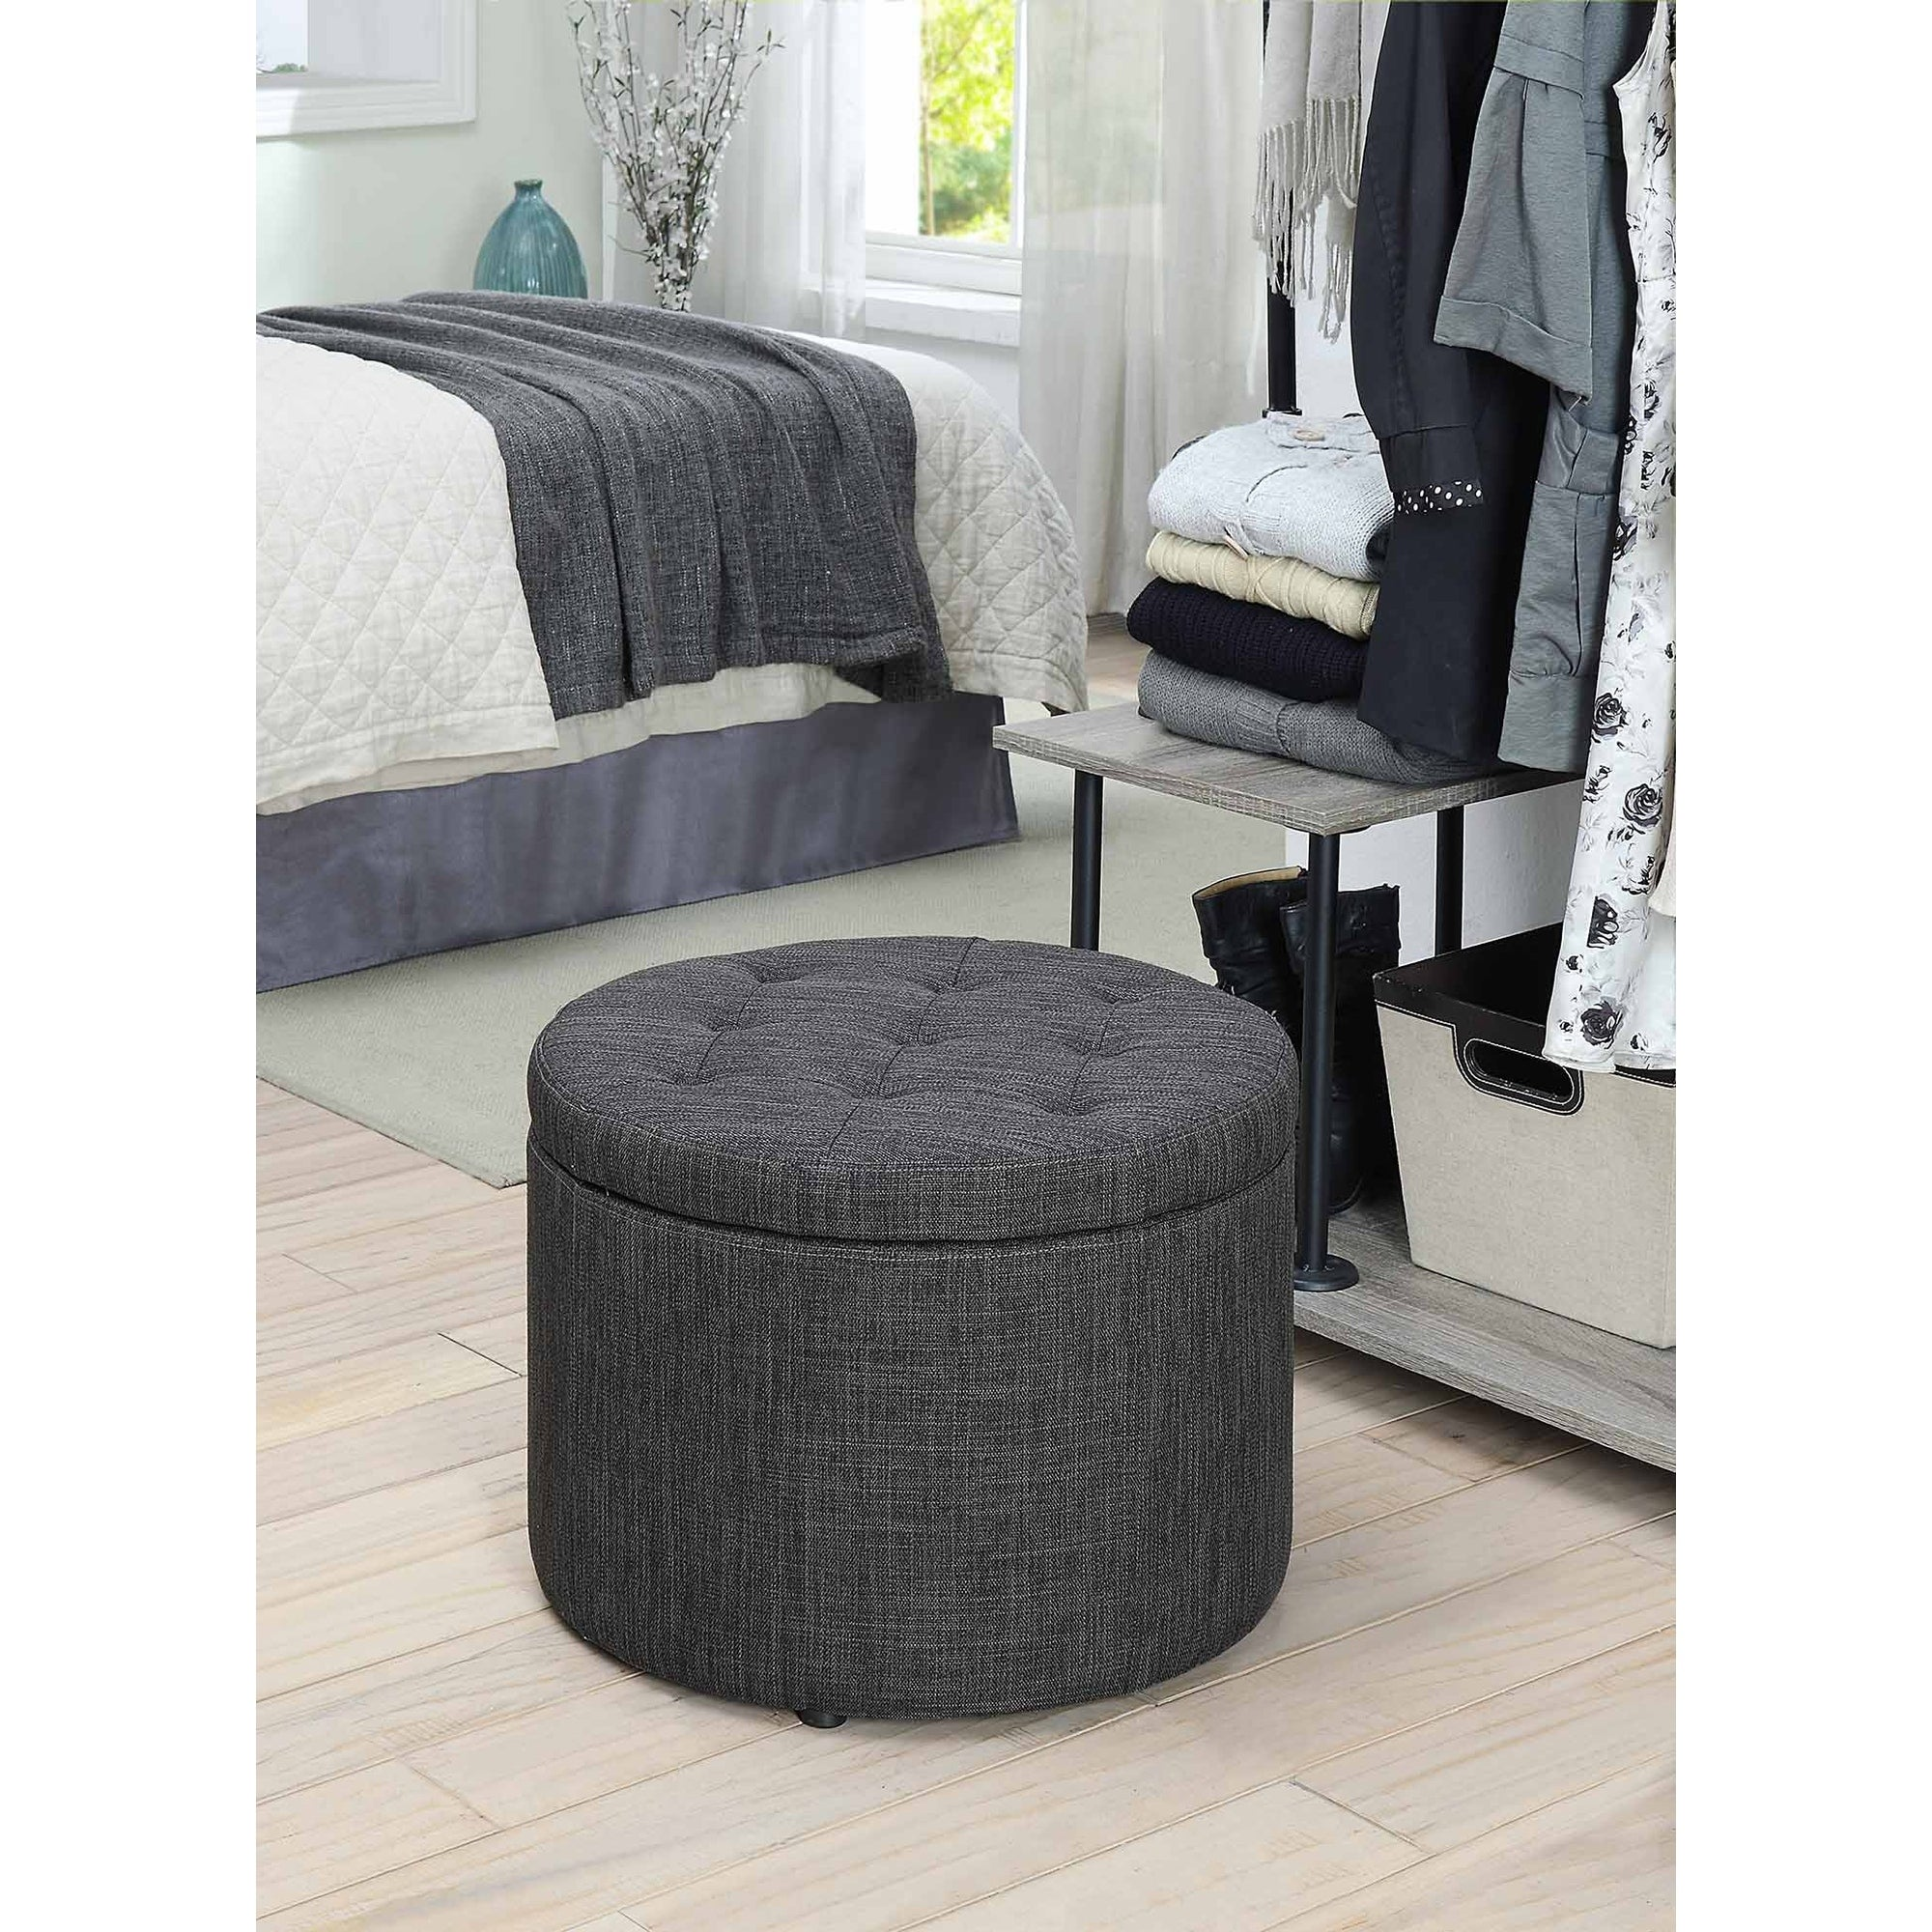 Shoe Ottoman Part - 34: Porch U0026 Den Bywater Congress Round Shoe Storage Ottoman - Free Shipping  Today - Overstock.com - 18036358